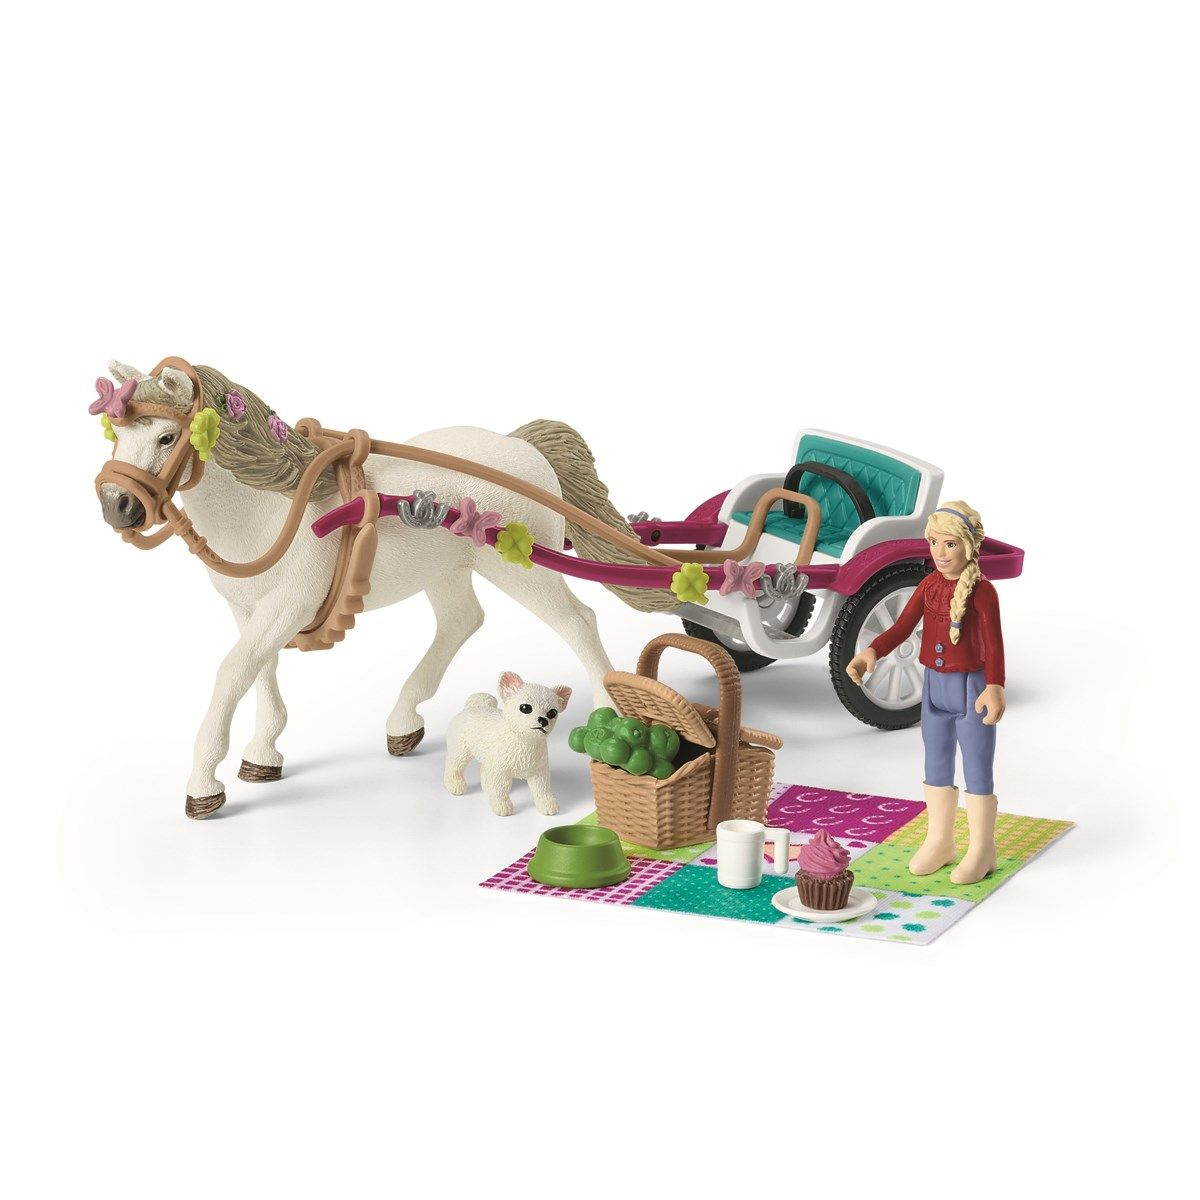 Schleich - Small carriage for the big horse show (42467)